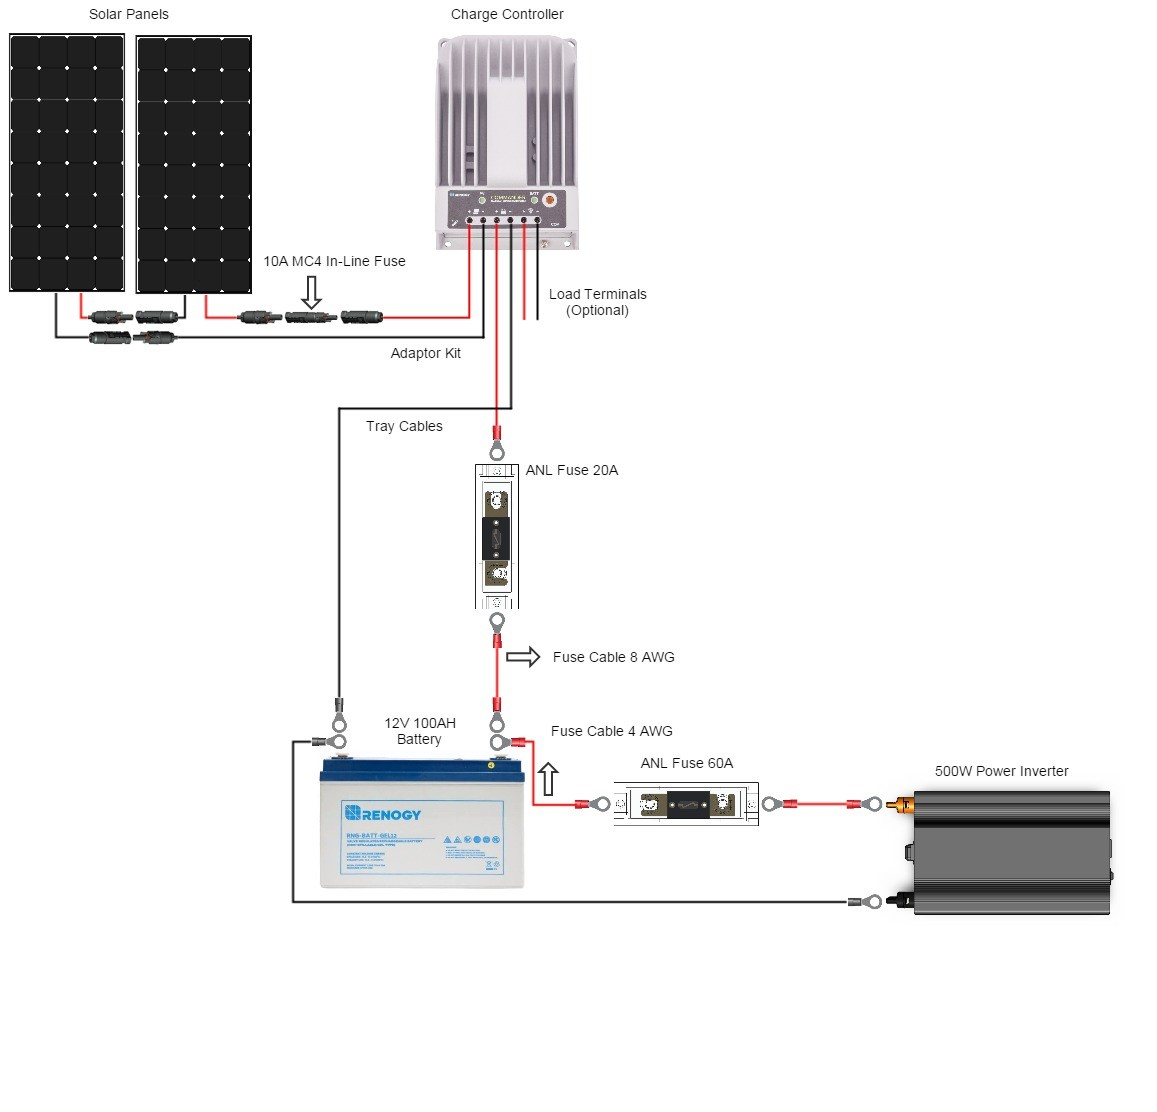 Should I Wire My Panels In Parallel Or In Series? - Renogy - Power Inverter Wiring Diagram